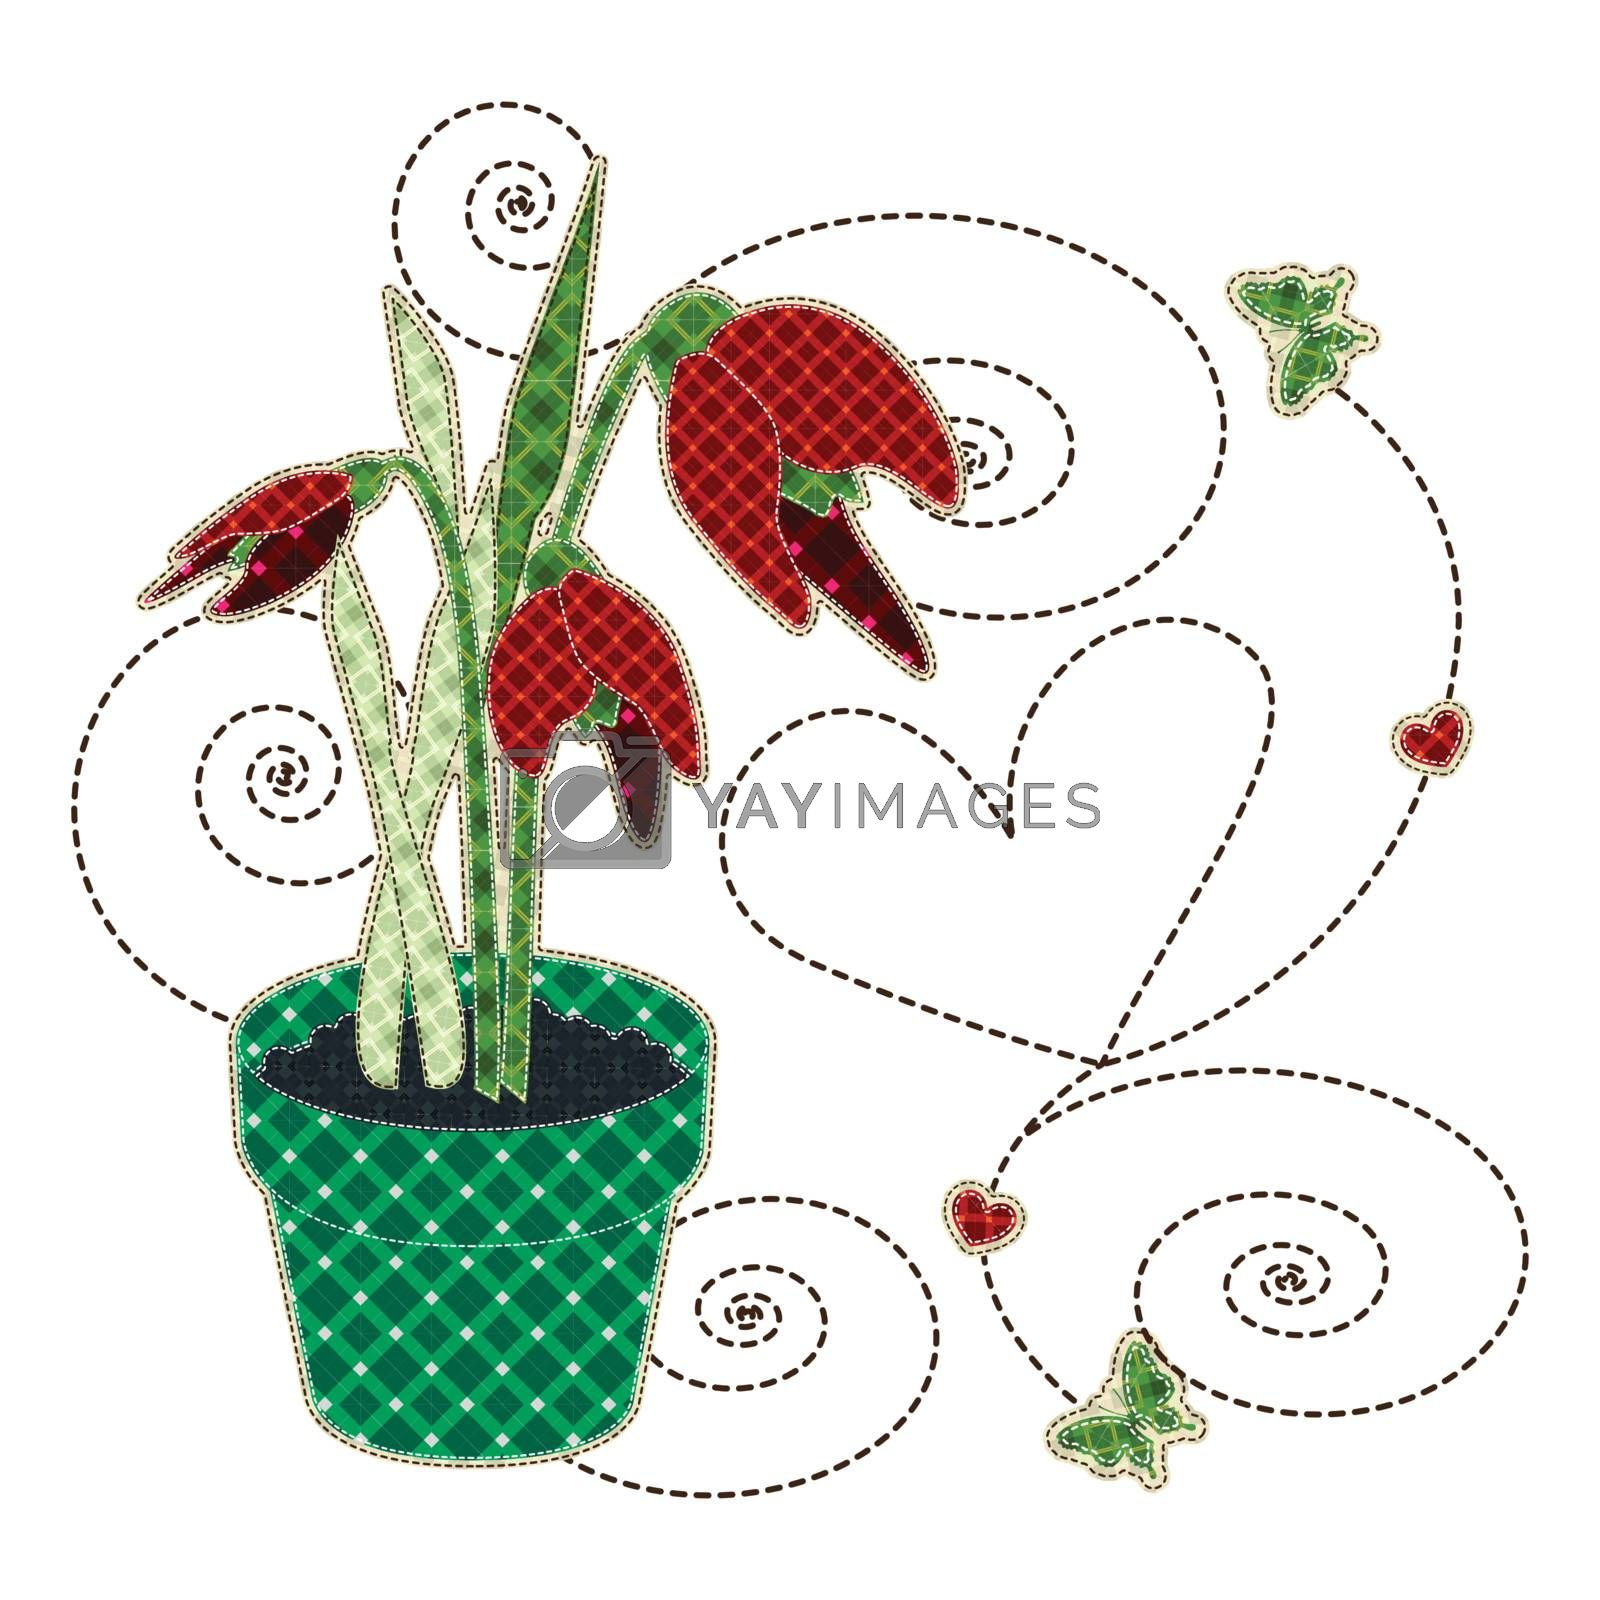 Illustrations patchwork of tulips in a pot with butterfly